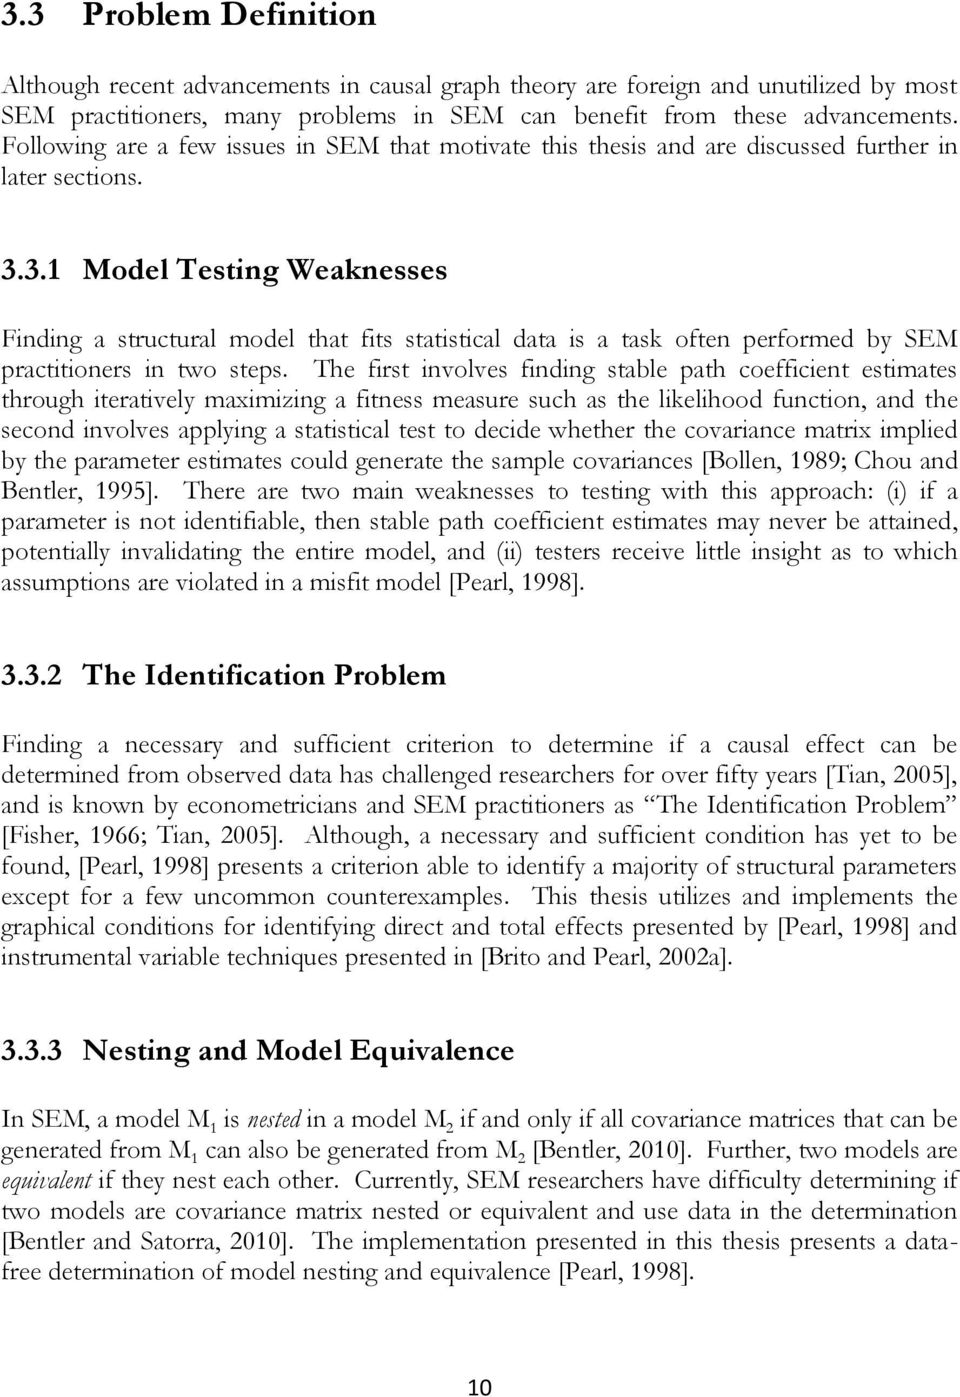 3.1 Model Testing Weaknesses Finding a structural model that fits statistical data is a task often performed by SEM practitioners in two steps.